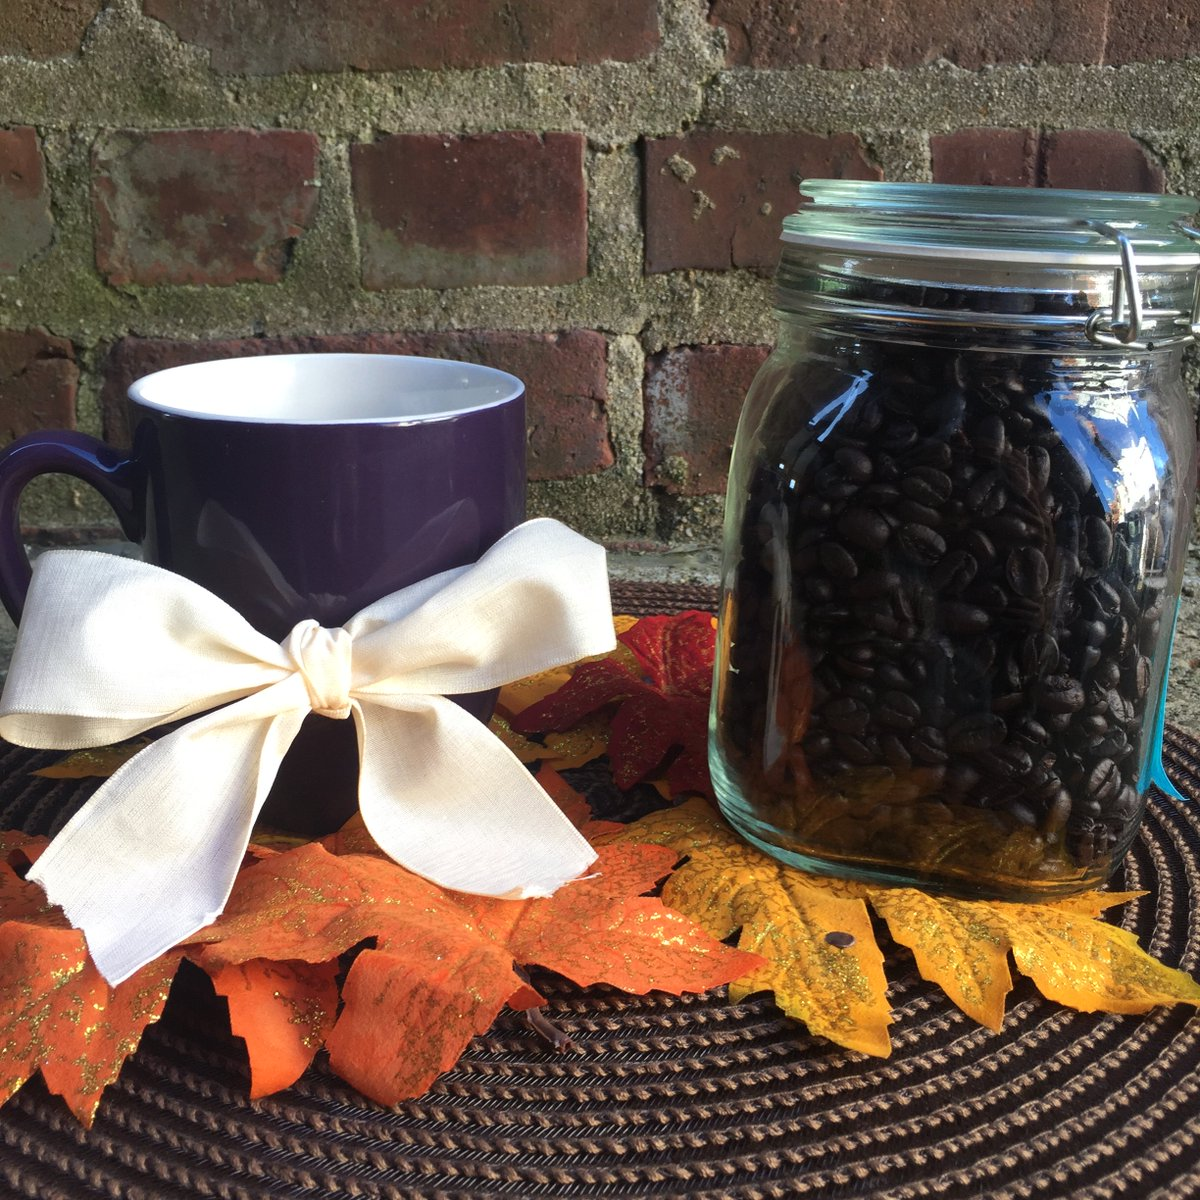 How many Eight O'Clock coffee beans are in this jar? Guess for your chance to win some coffee! https://t.co/hHy7uMlXeN